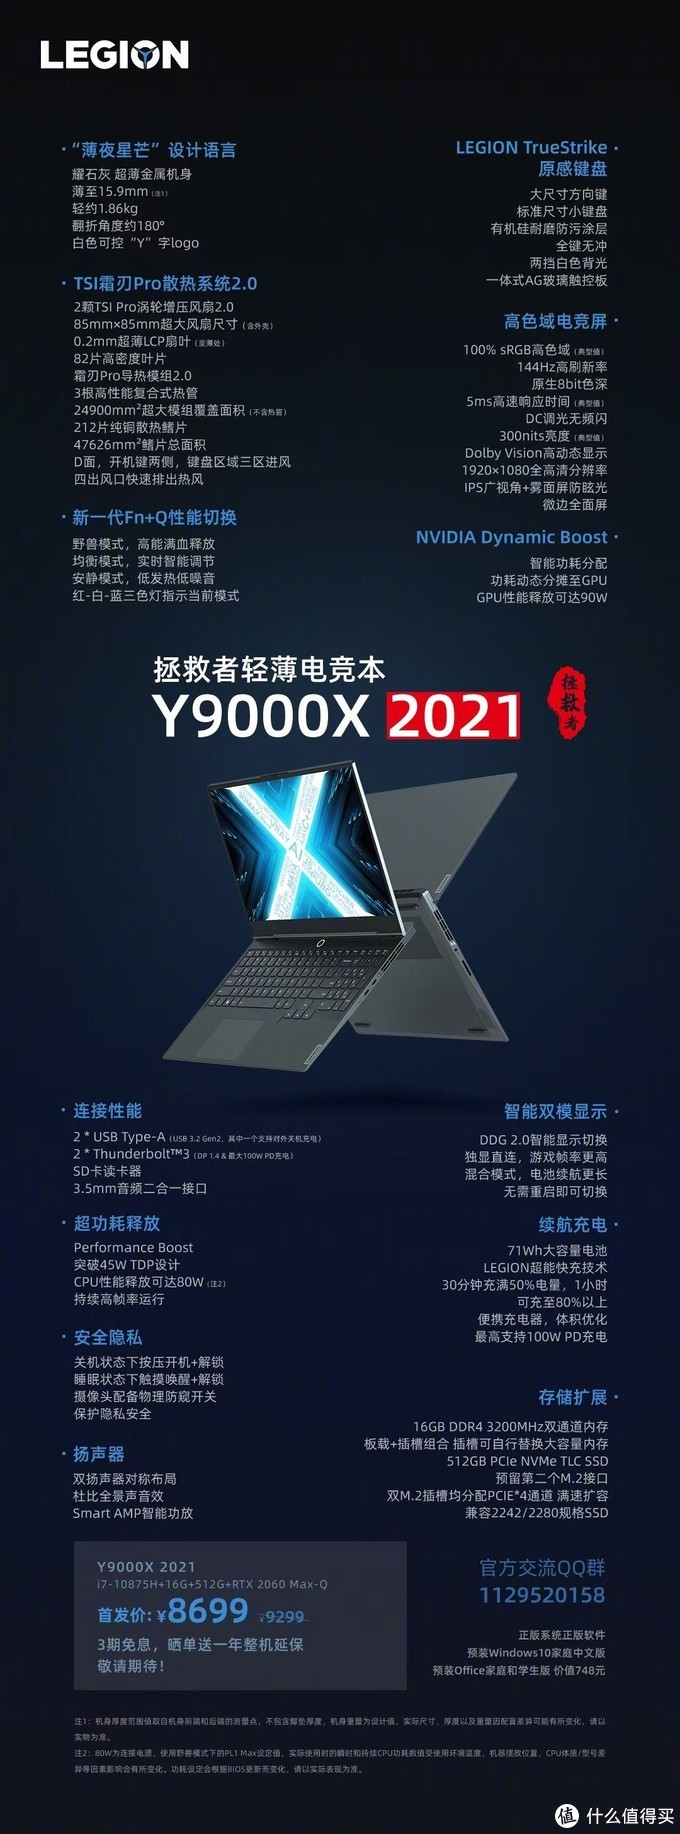 Lenovo launches new savior Y9000X and R9000X (2021 models) gaming notebooks